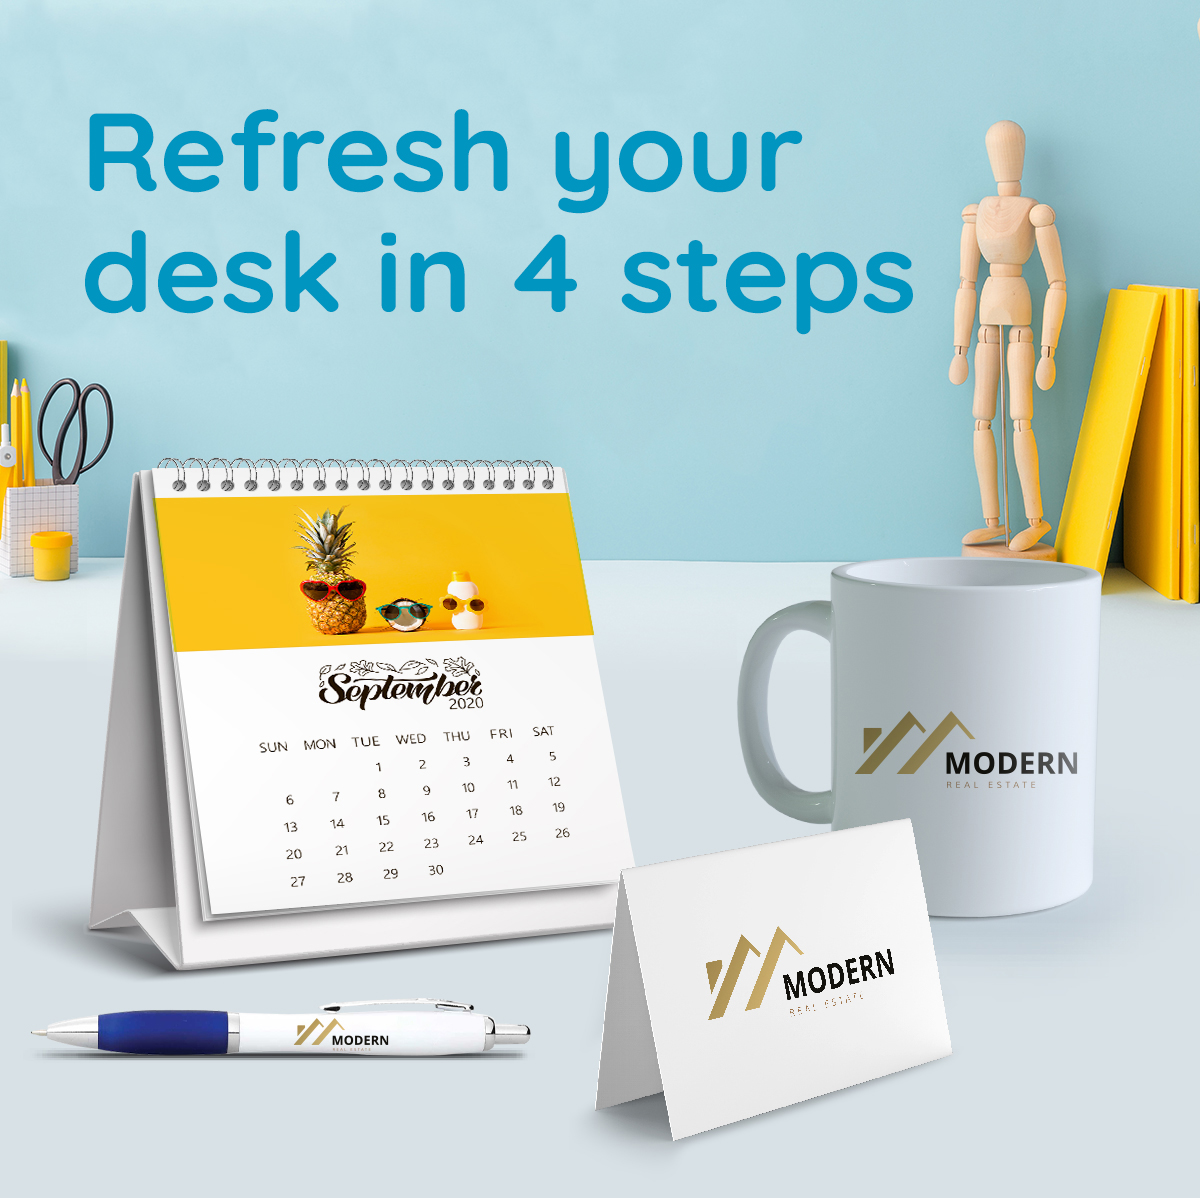 Here are four ways to refresh your desk